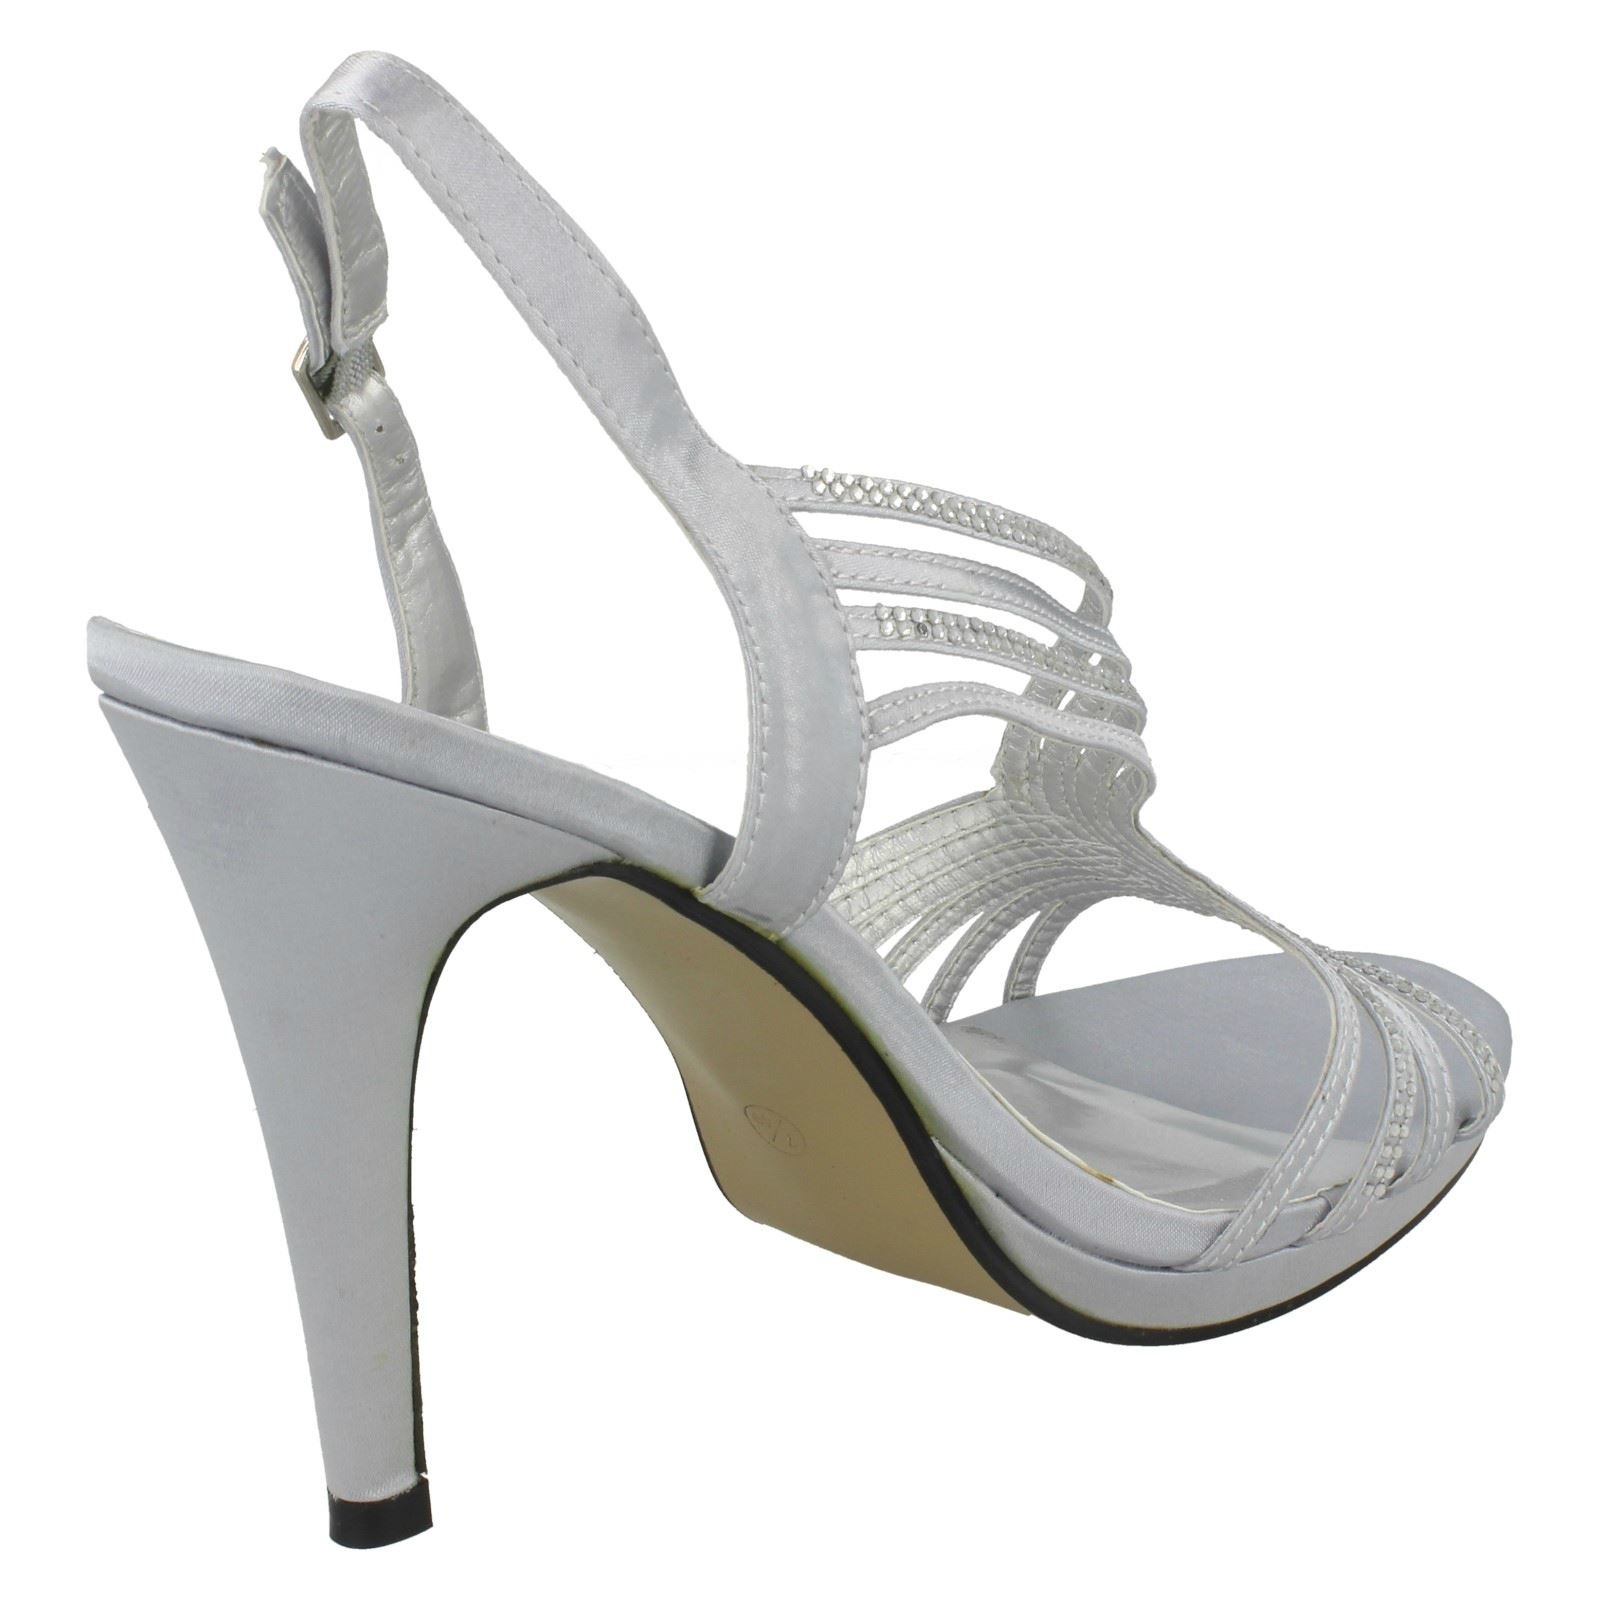 5fde958d14 Ladies Anne Michelle Diamante Trim Buckle Open Back Heels | eBay